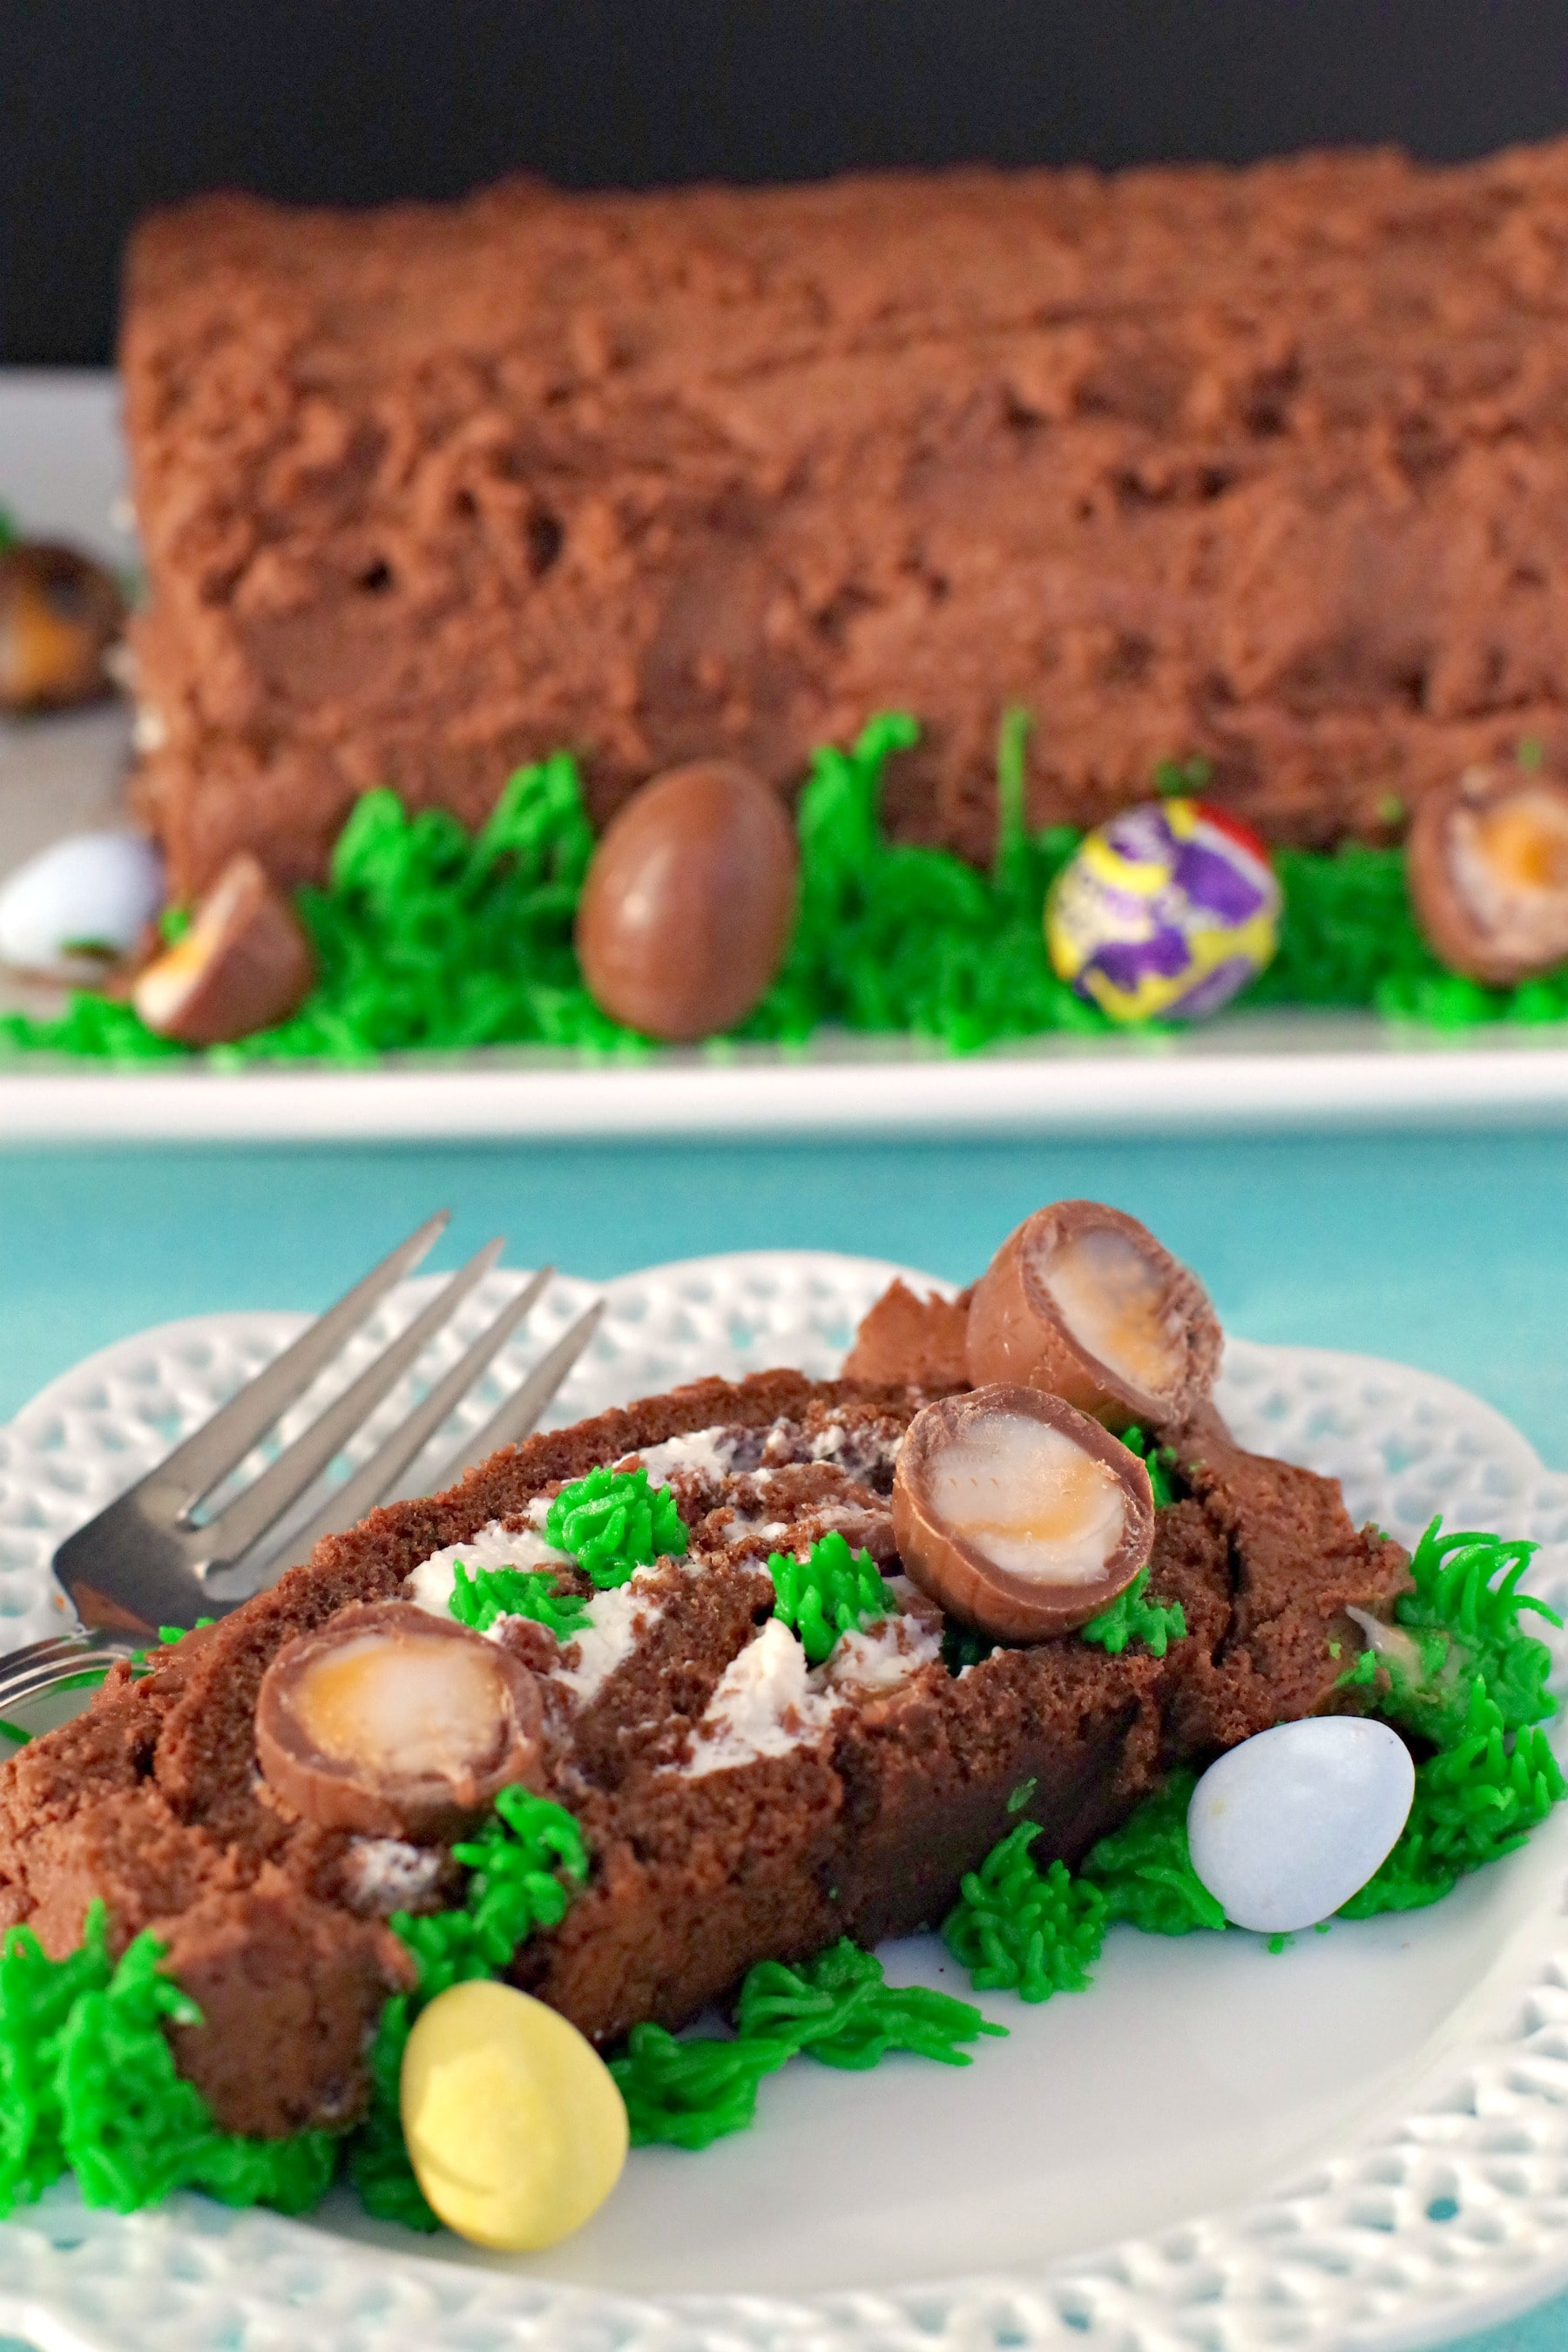 Easter Creme Egg Swiss Roll Cake on a white plate with cake in background